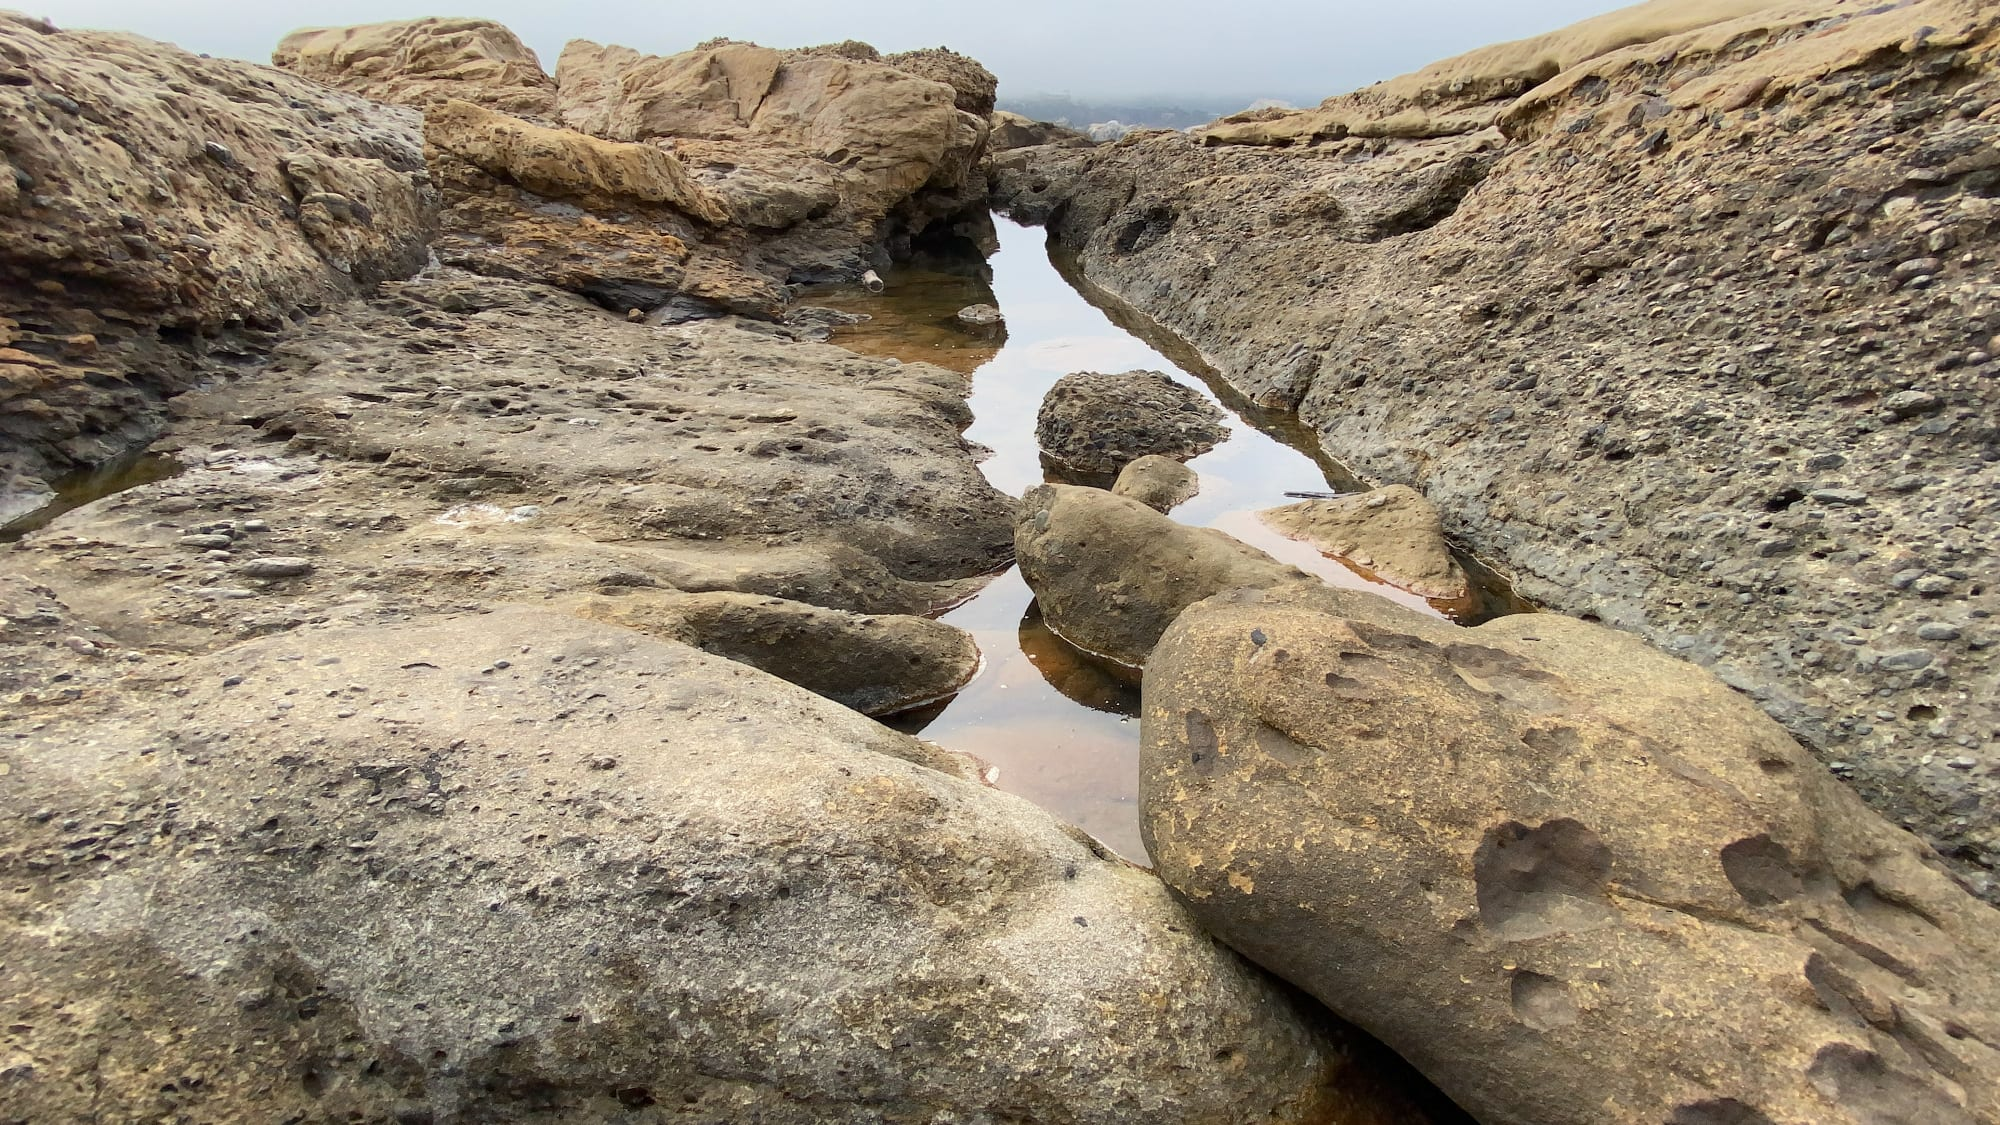 Tides Coming In, South Shore Trail, Point Lobos Hike